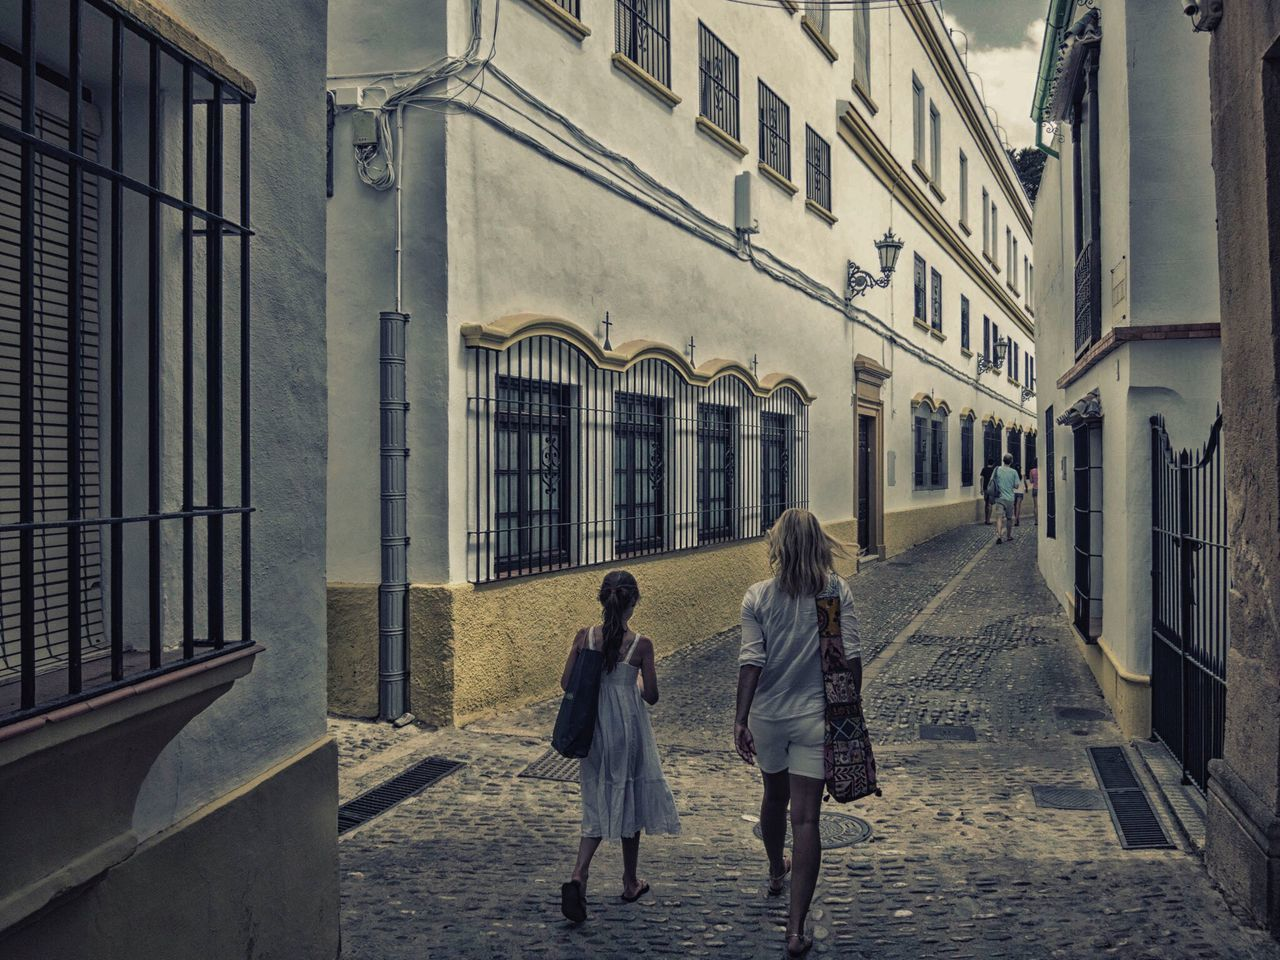 walking, two people, rear view, real people, building exterior, architecture, built structure, full length, street, togetherness, women, lifestyles, the way forward, day, leisure activity, girls, city, outdoors, pedestrian, warm clothing, adult, people